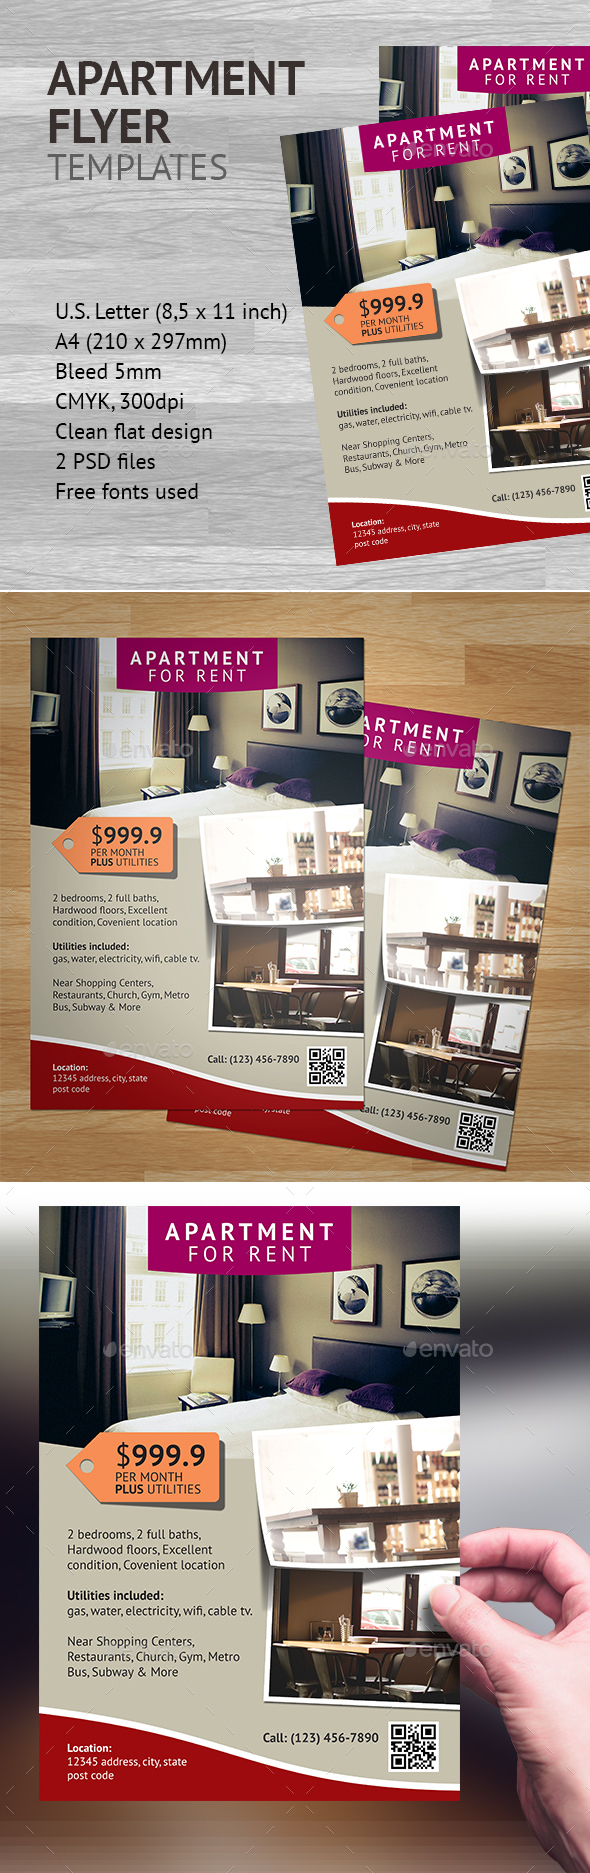 Apartment Flyer Template 2 - Commerce Flyers